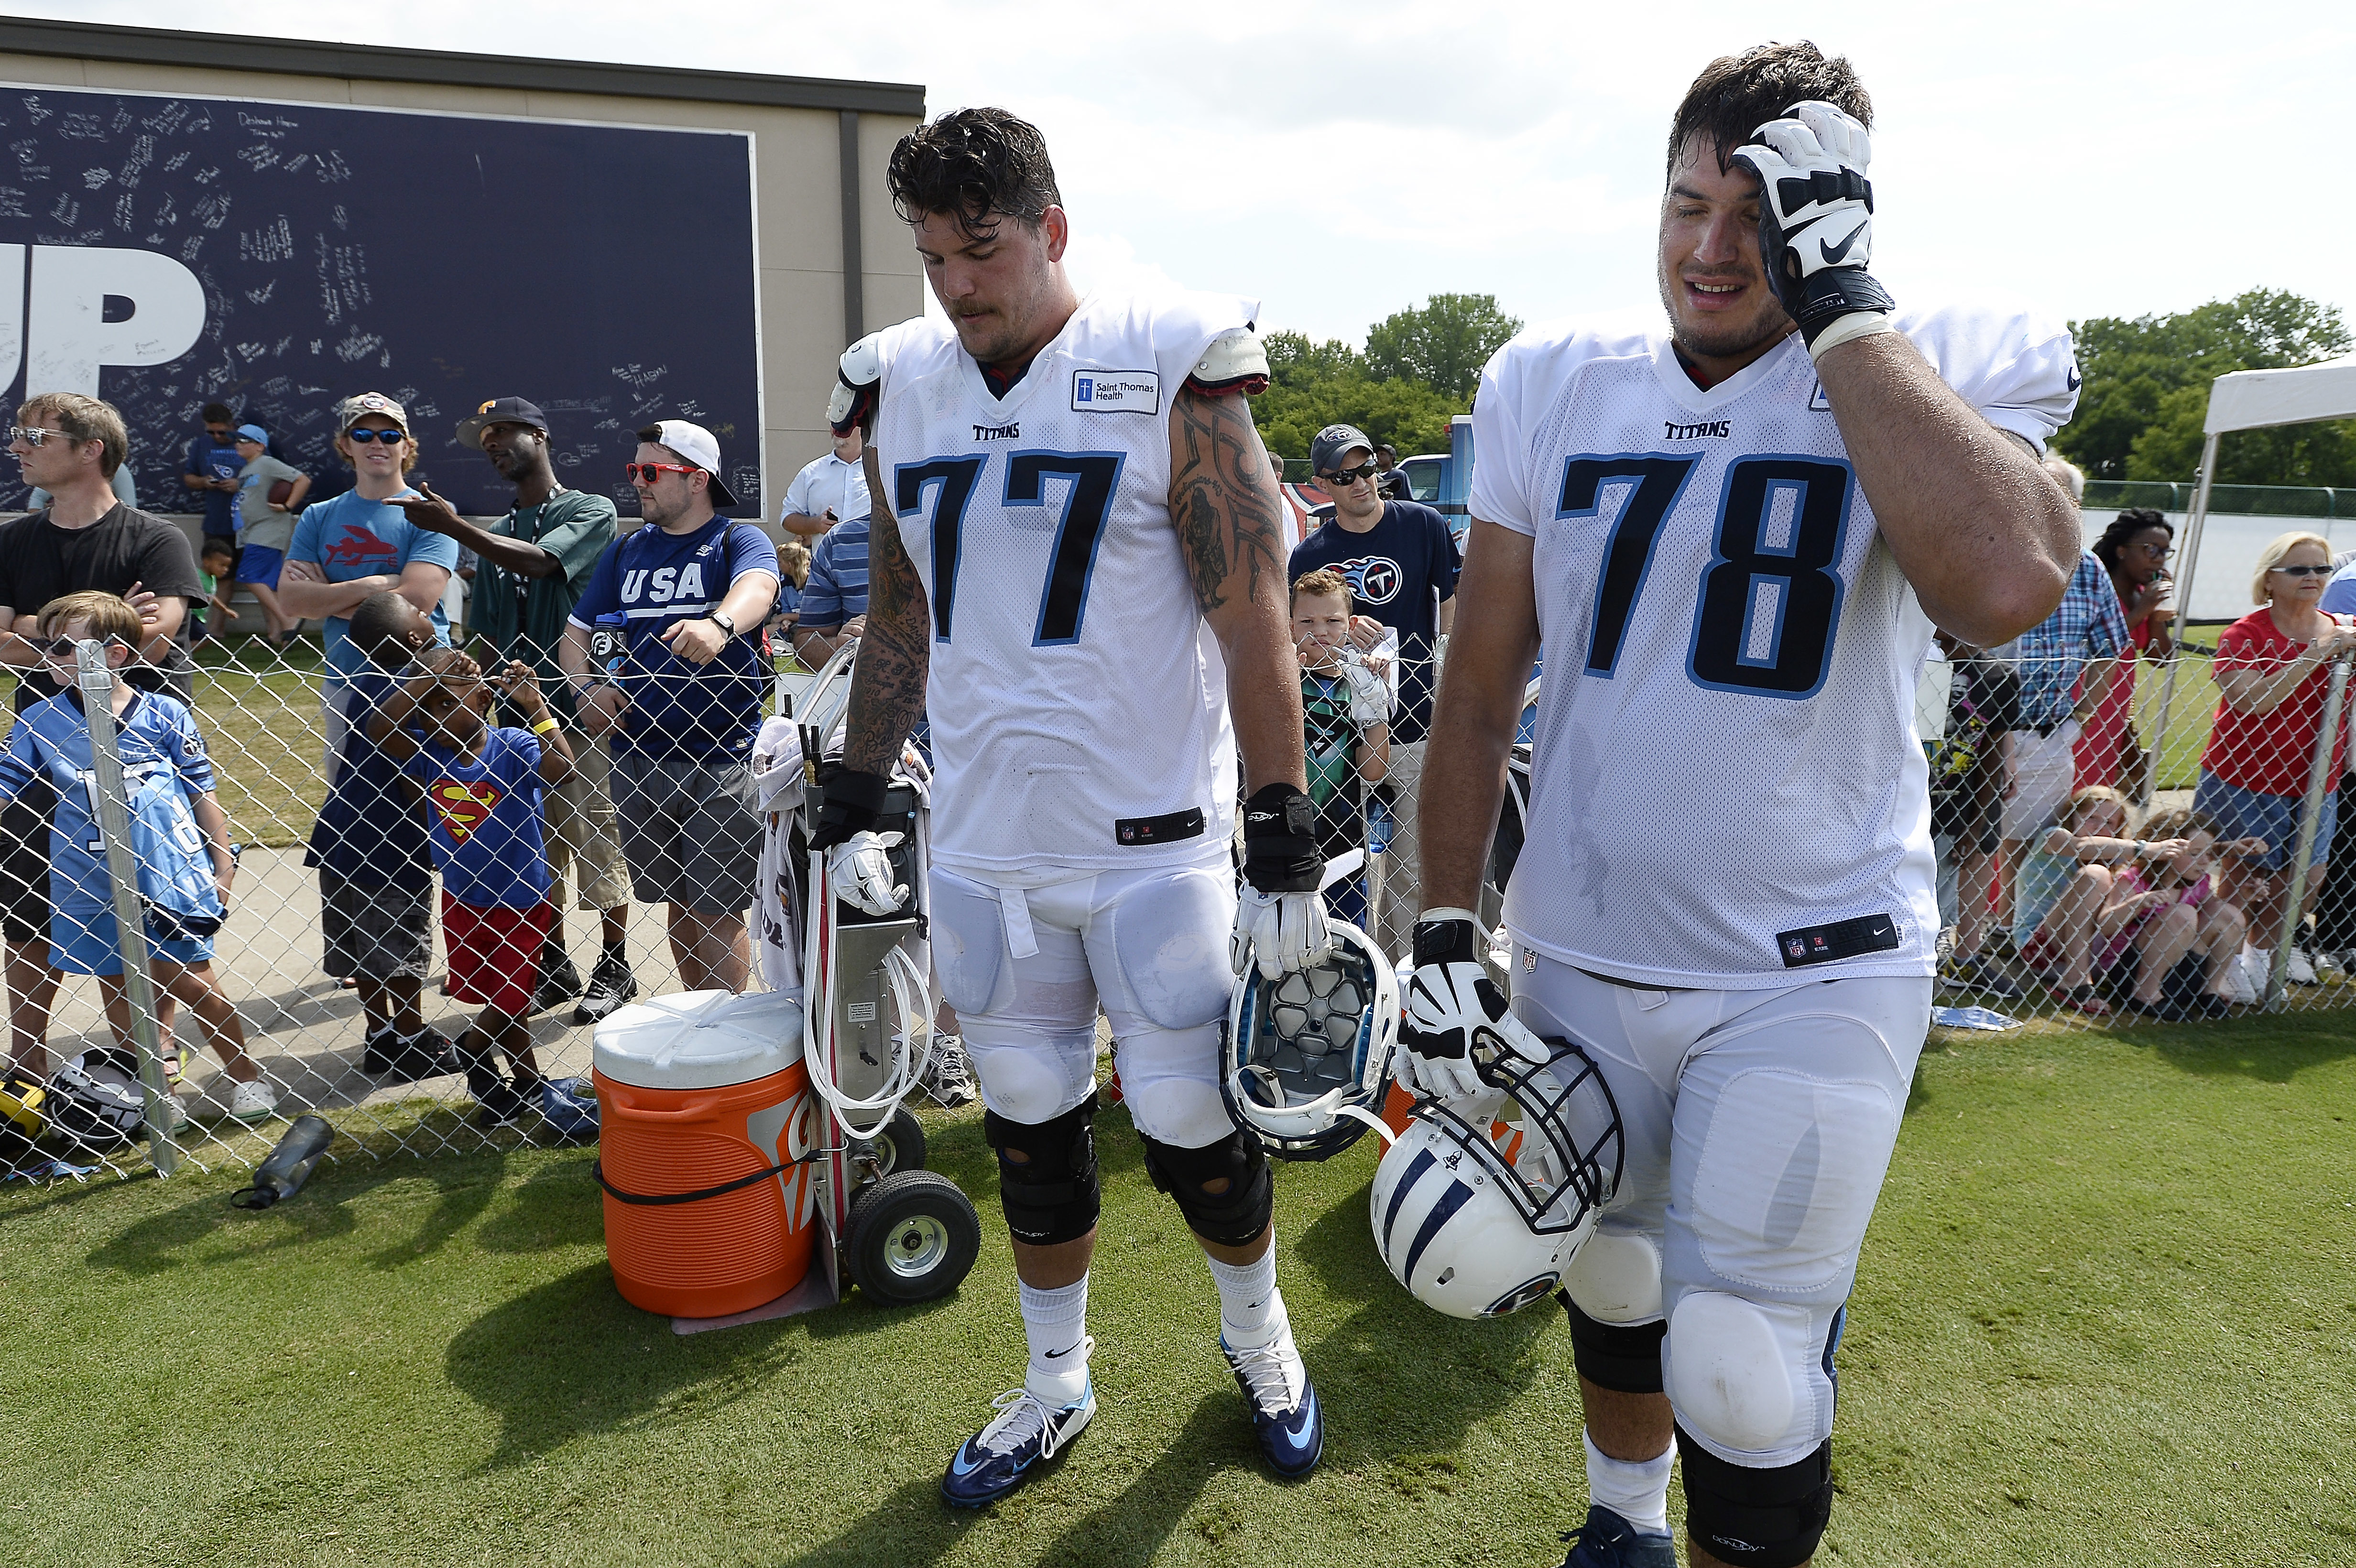 FILE - This Aug. 4, 2016 file photo shows Tennessee Titans tackles Taylor Lewan (77) and Jack Conklin (78) taking a break during NFL football training camp in Nashville, Tenn. The Tennessee Titans have done a much better job protecting quarterback Marcus